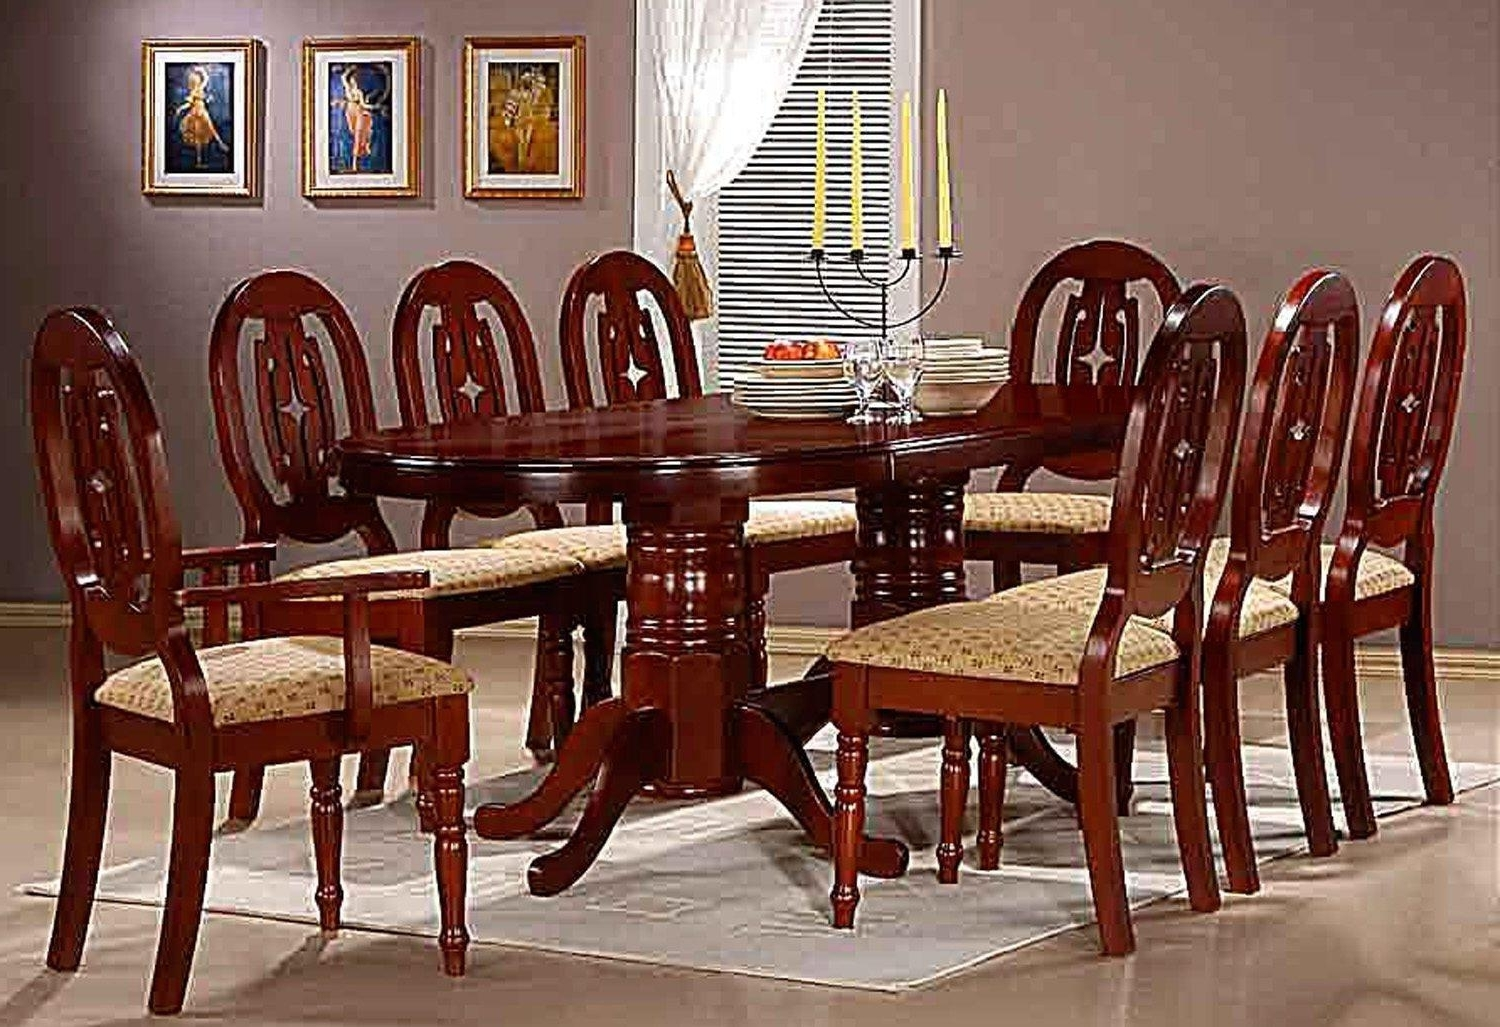 Newest Wooden 8 Seater Dinning Table Set Glow Finish With Chairs. – Gunjan intended for Dining Tables 8 Chairs Set